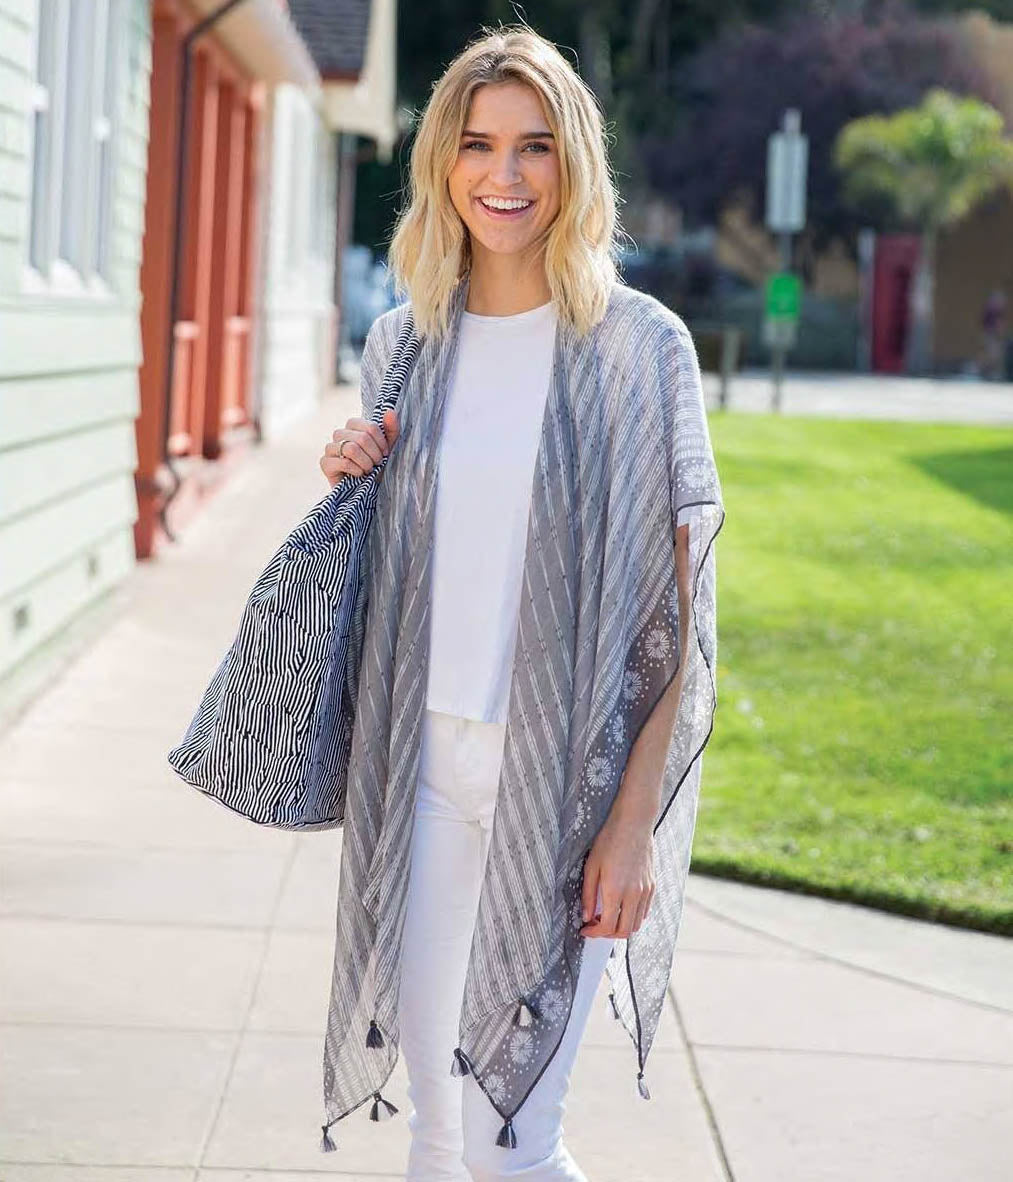 A cute grey and white kimono for summer perks up any outfit!